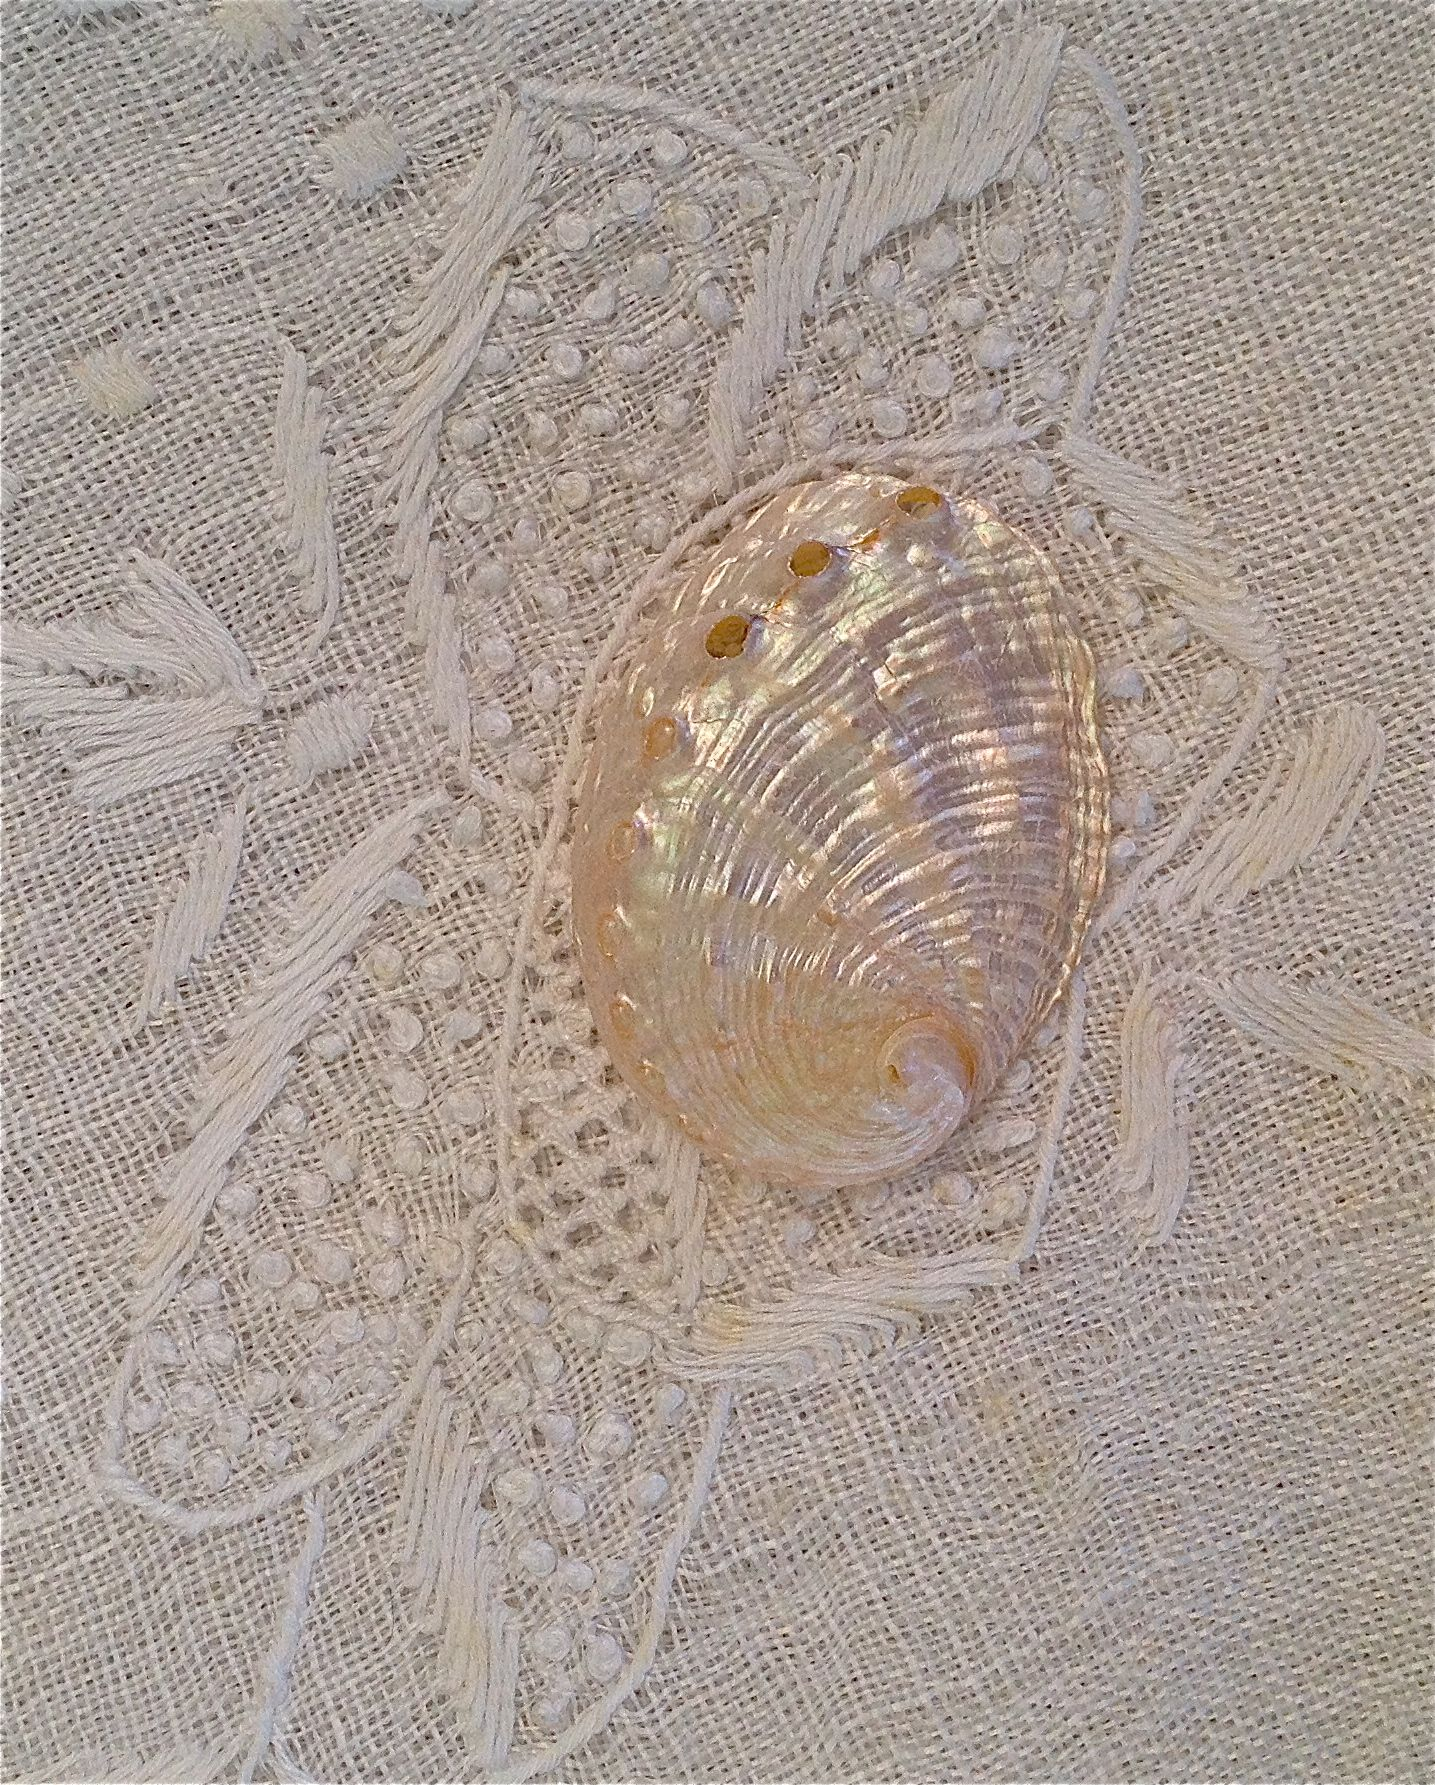 Lovely pearl shell on embroidery lace